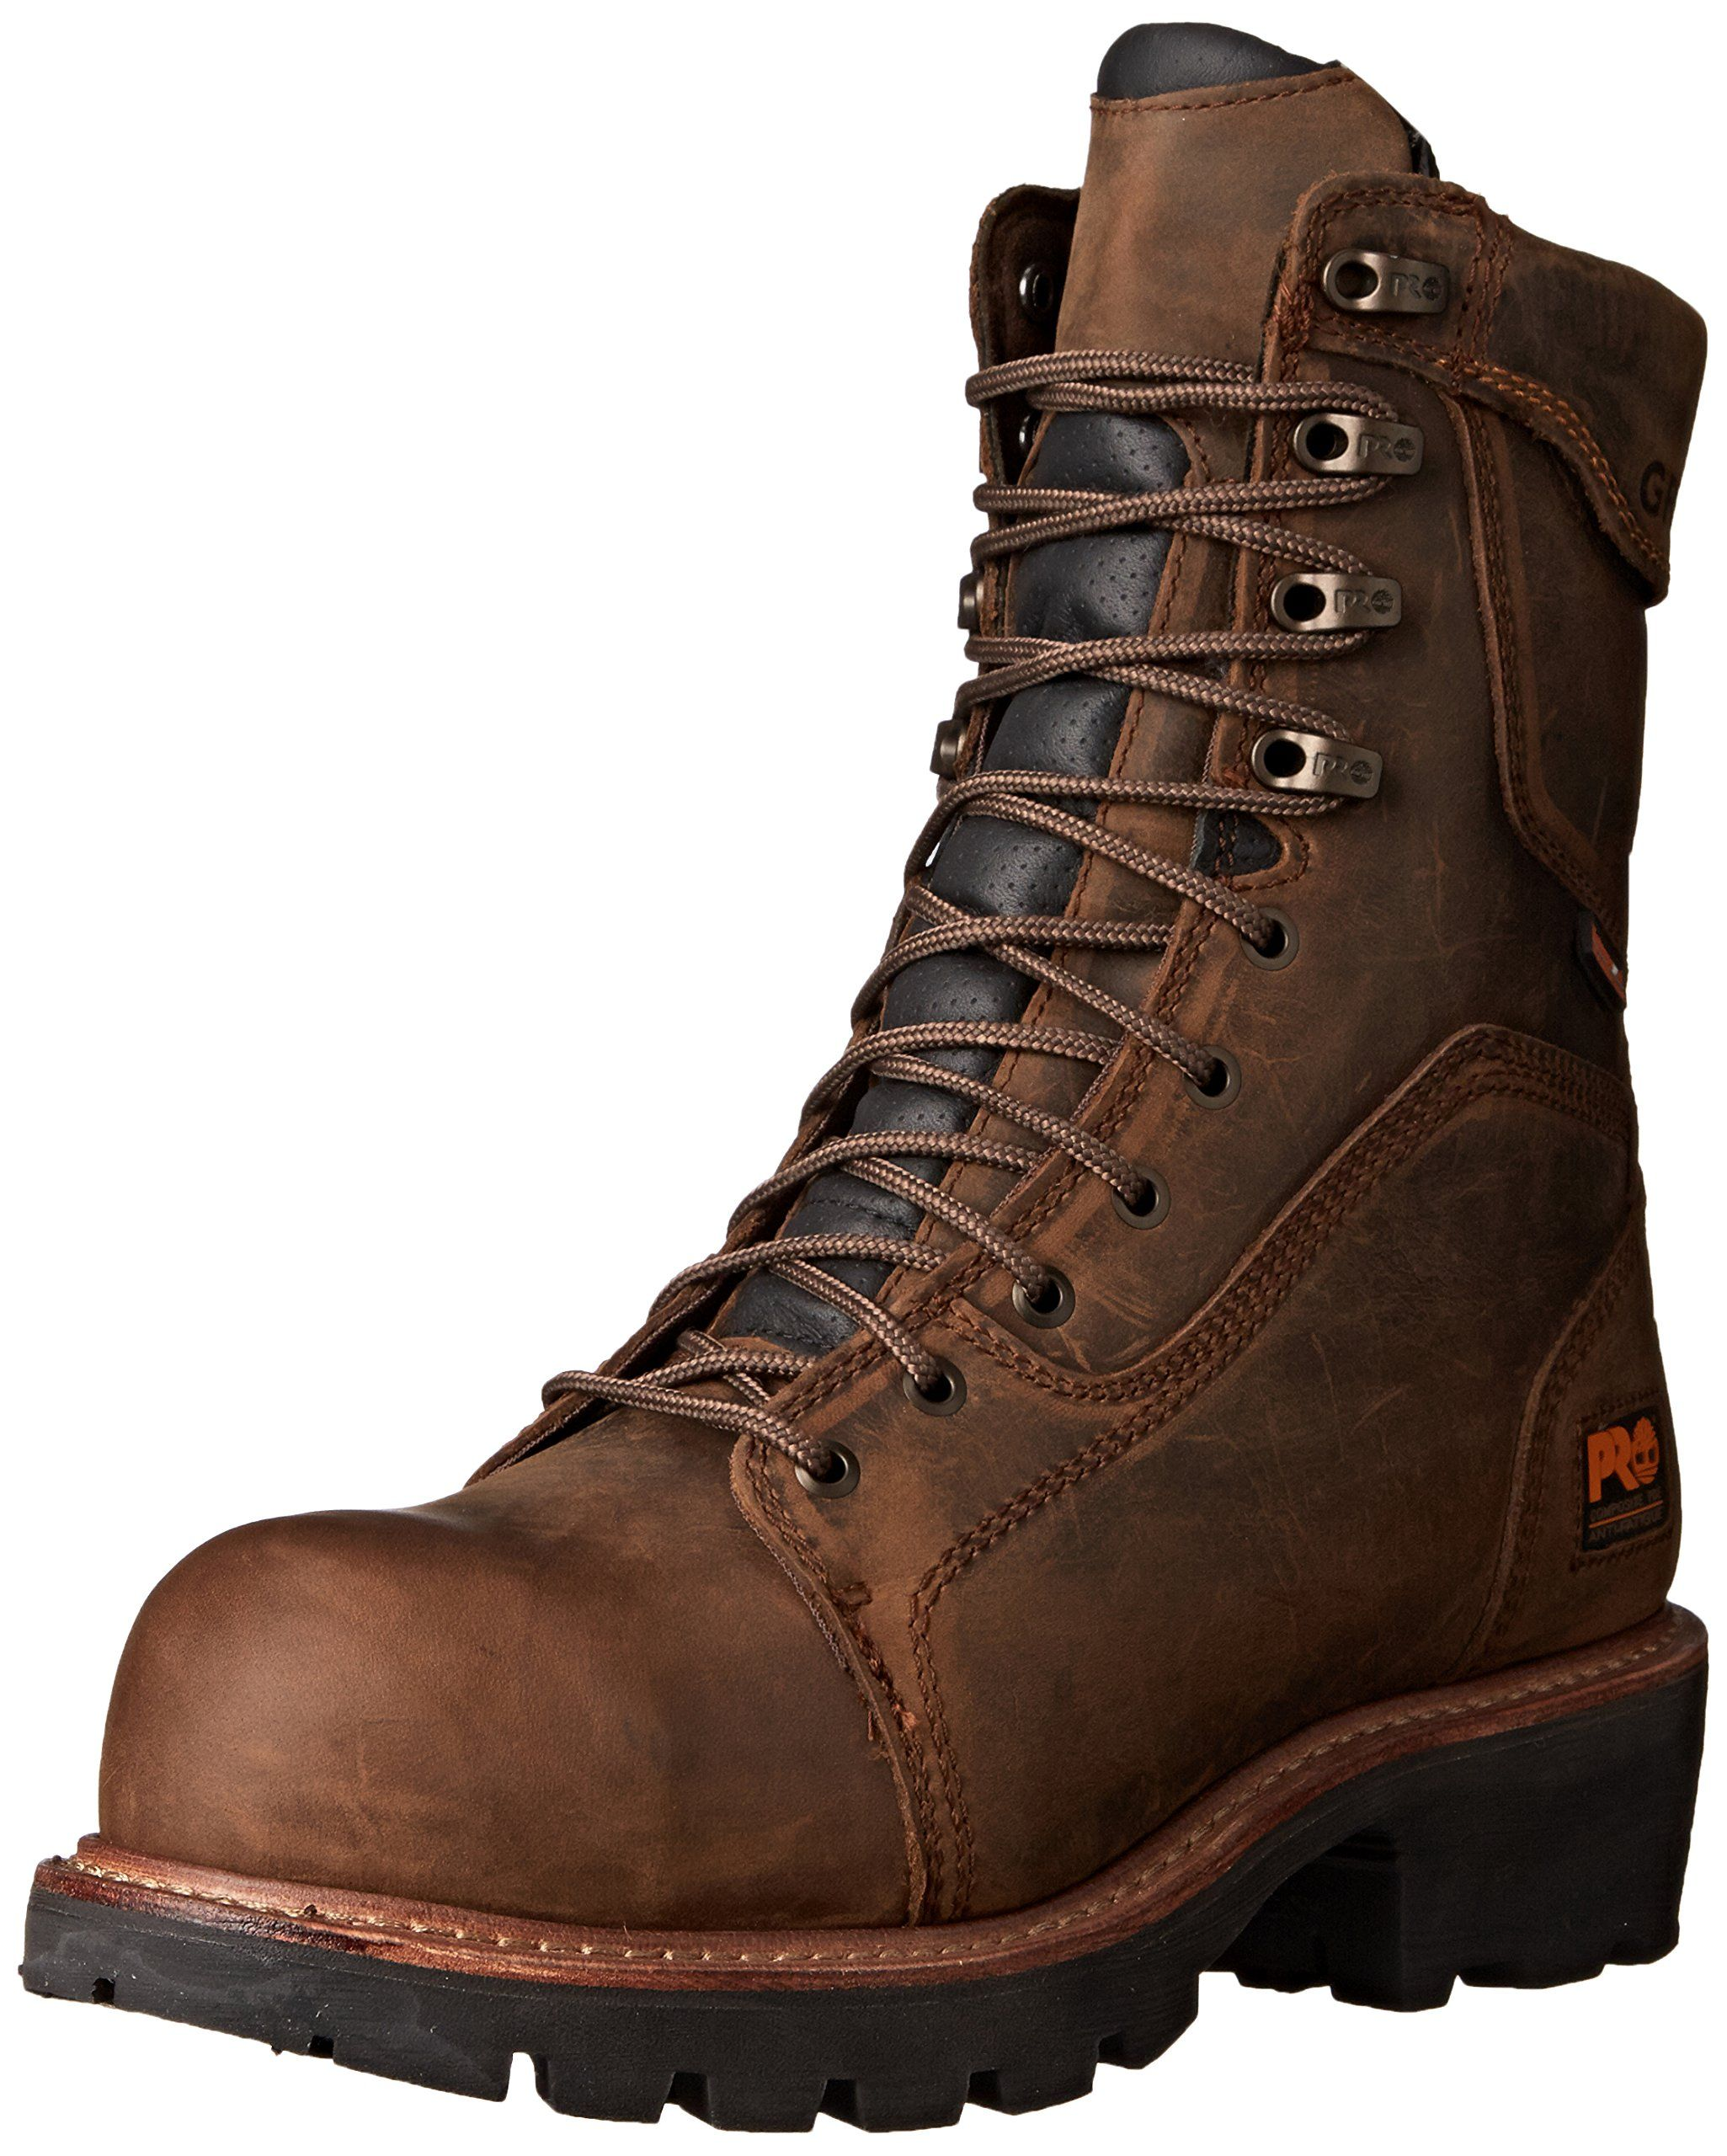 0fd902401b0 Timberland PRO Mens 9 Composite Safety Toe Waterproof Insulated ...